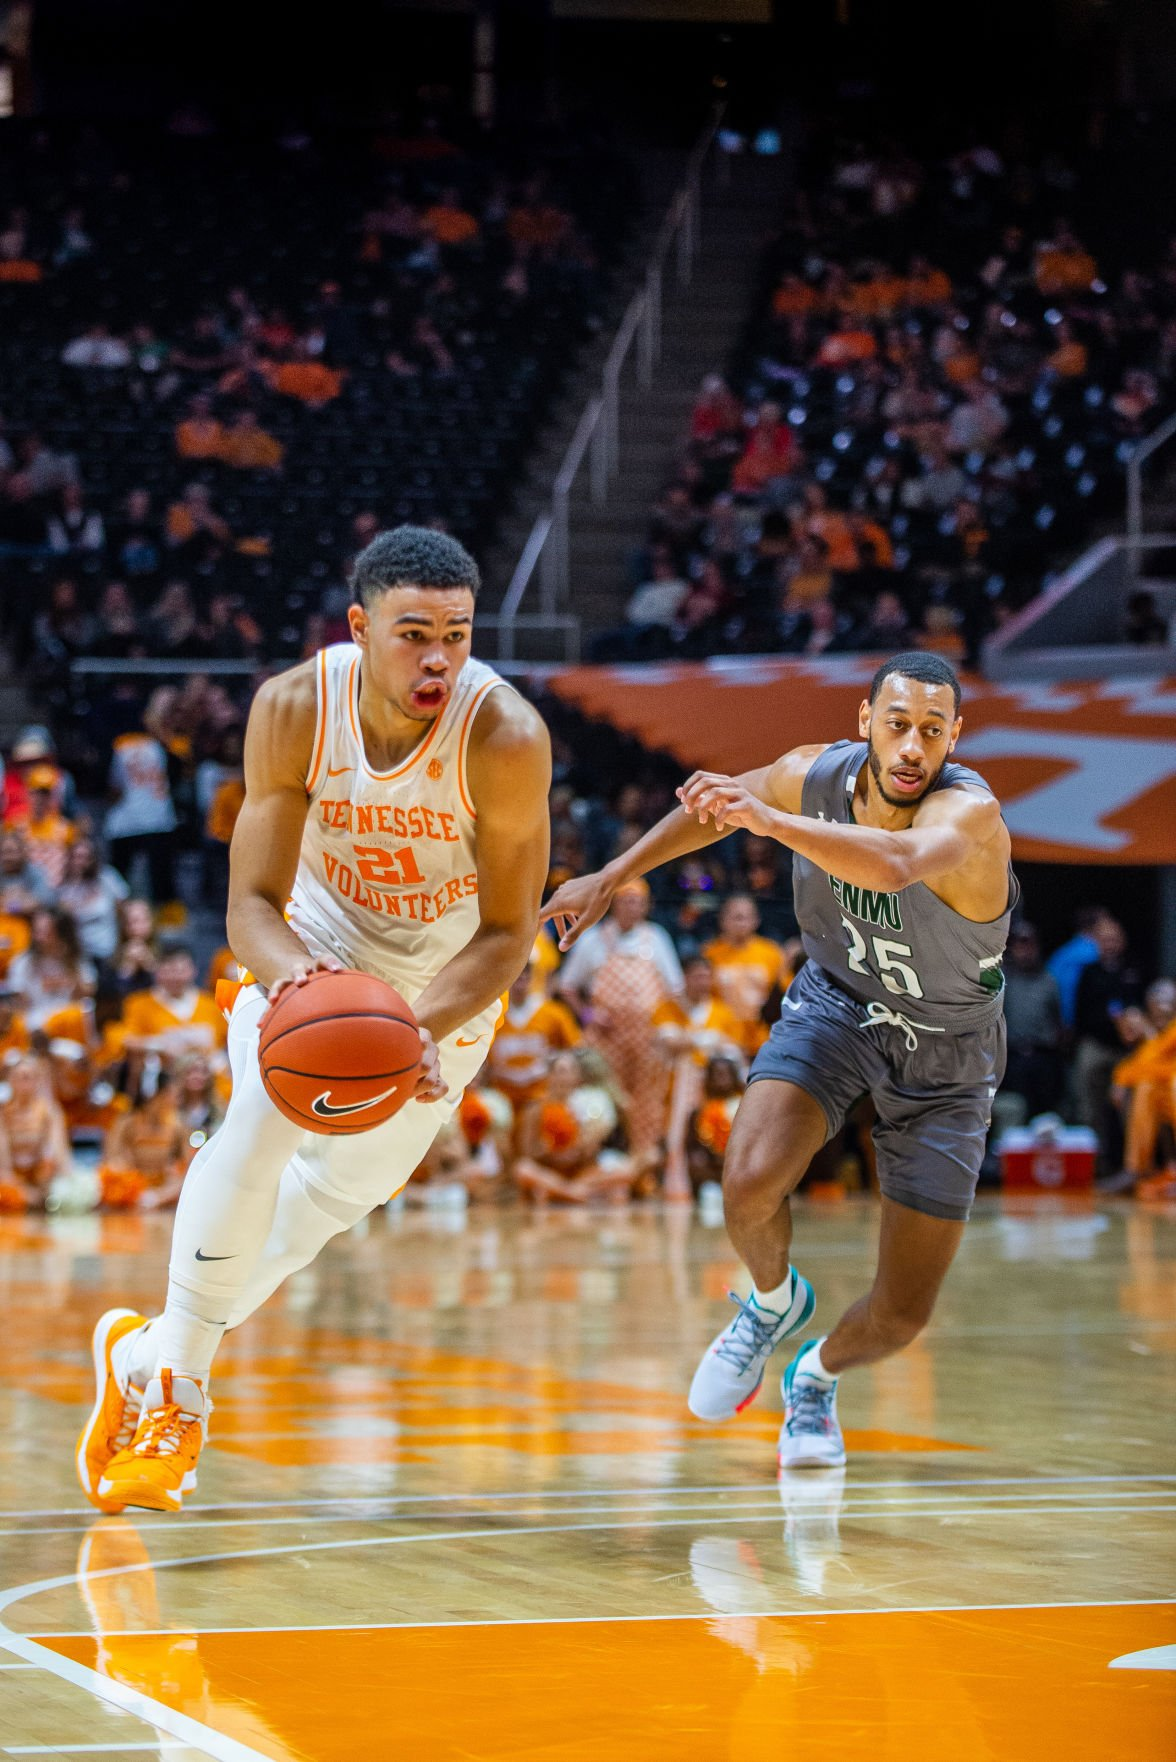 The Vols vs. Eastern New Mexico